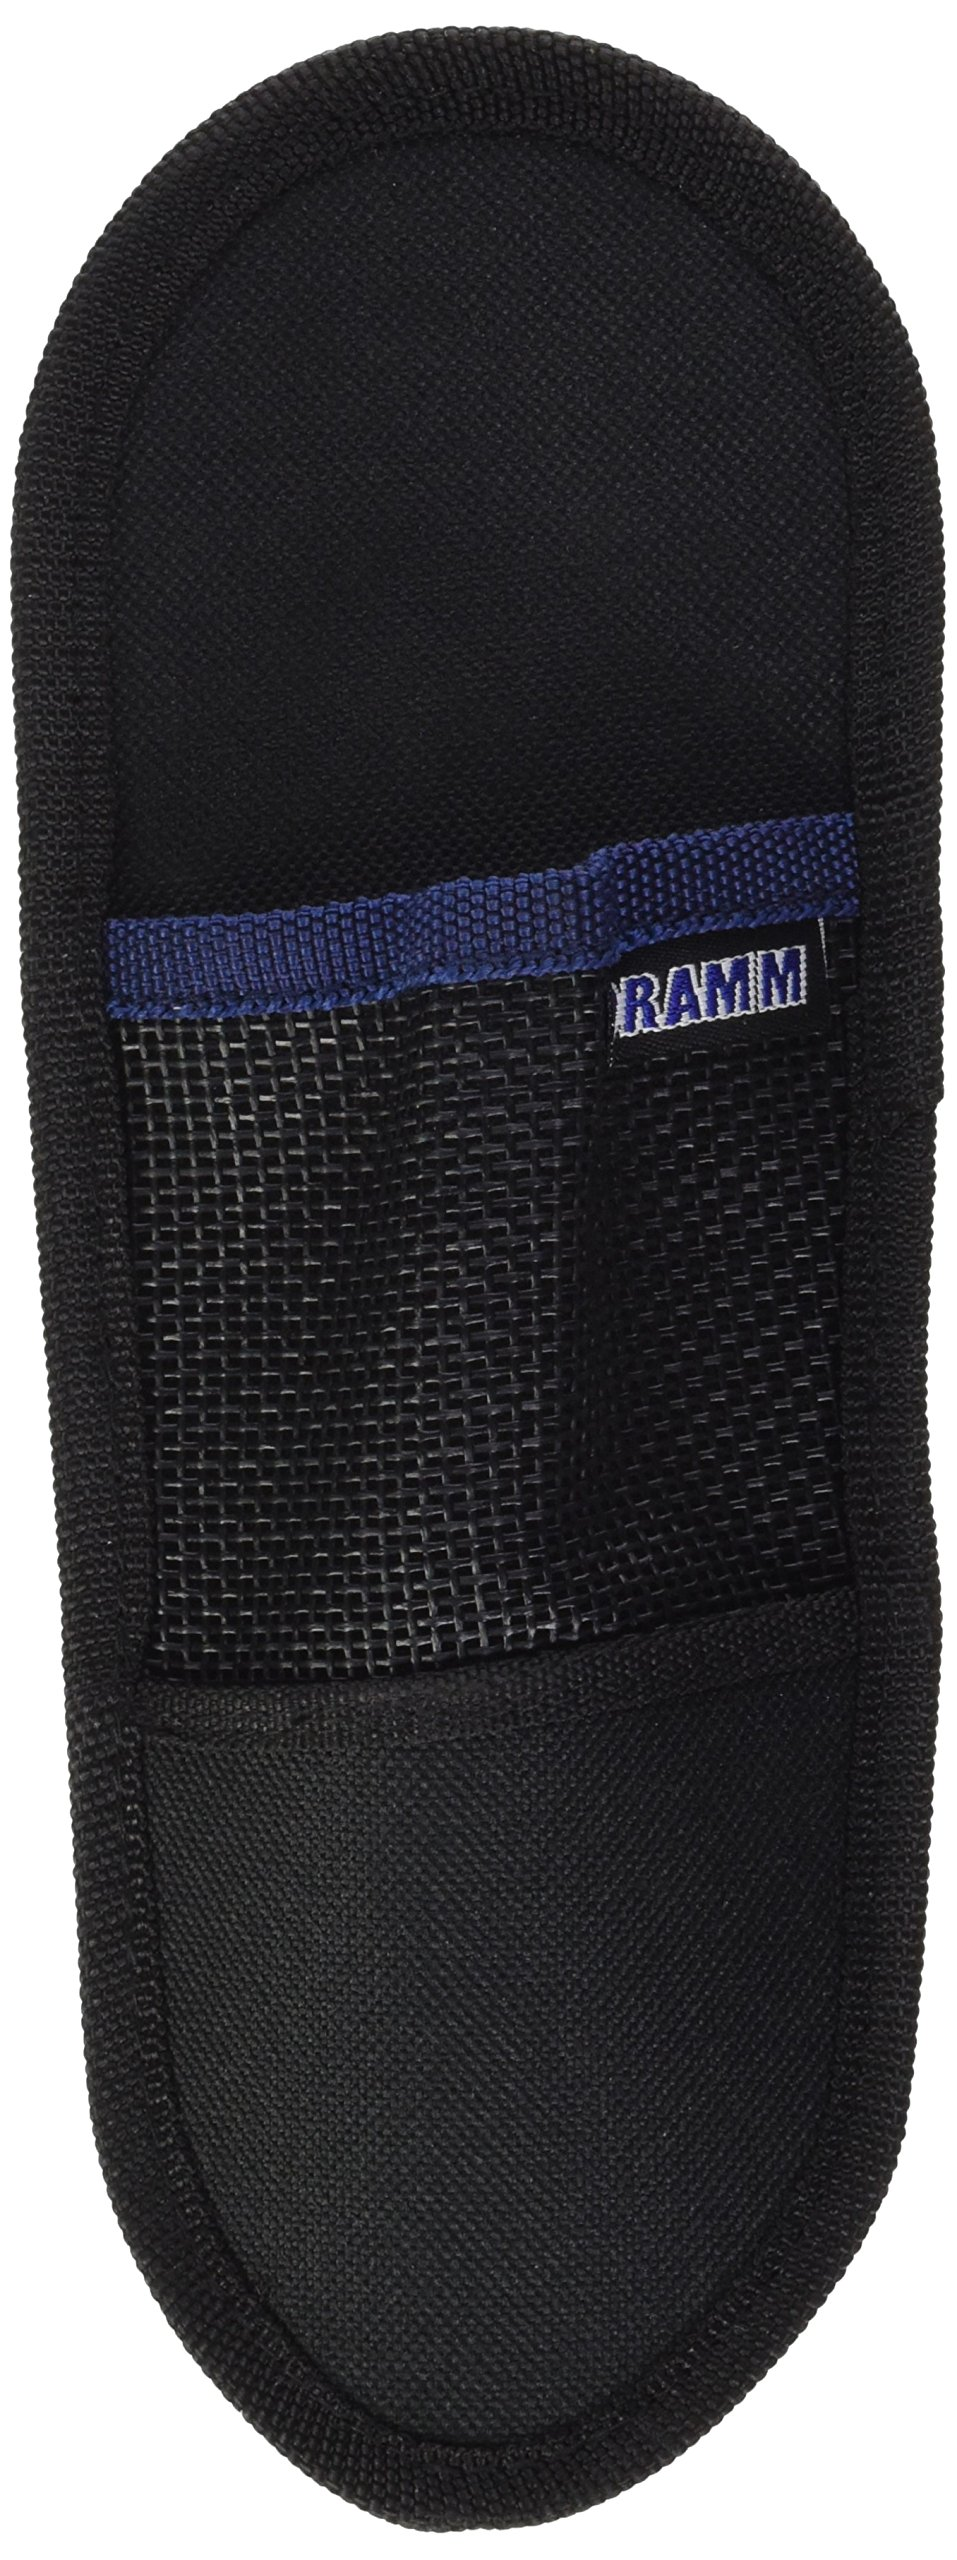 Dramm 19015 Cutting Tool Holster With Durable Nylon and Metal Belt Clip, Black